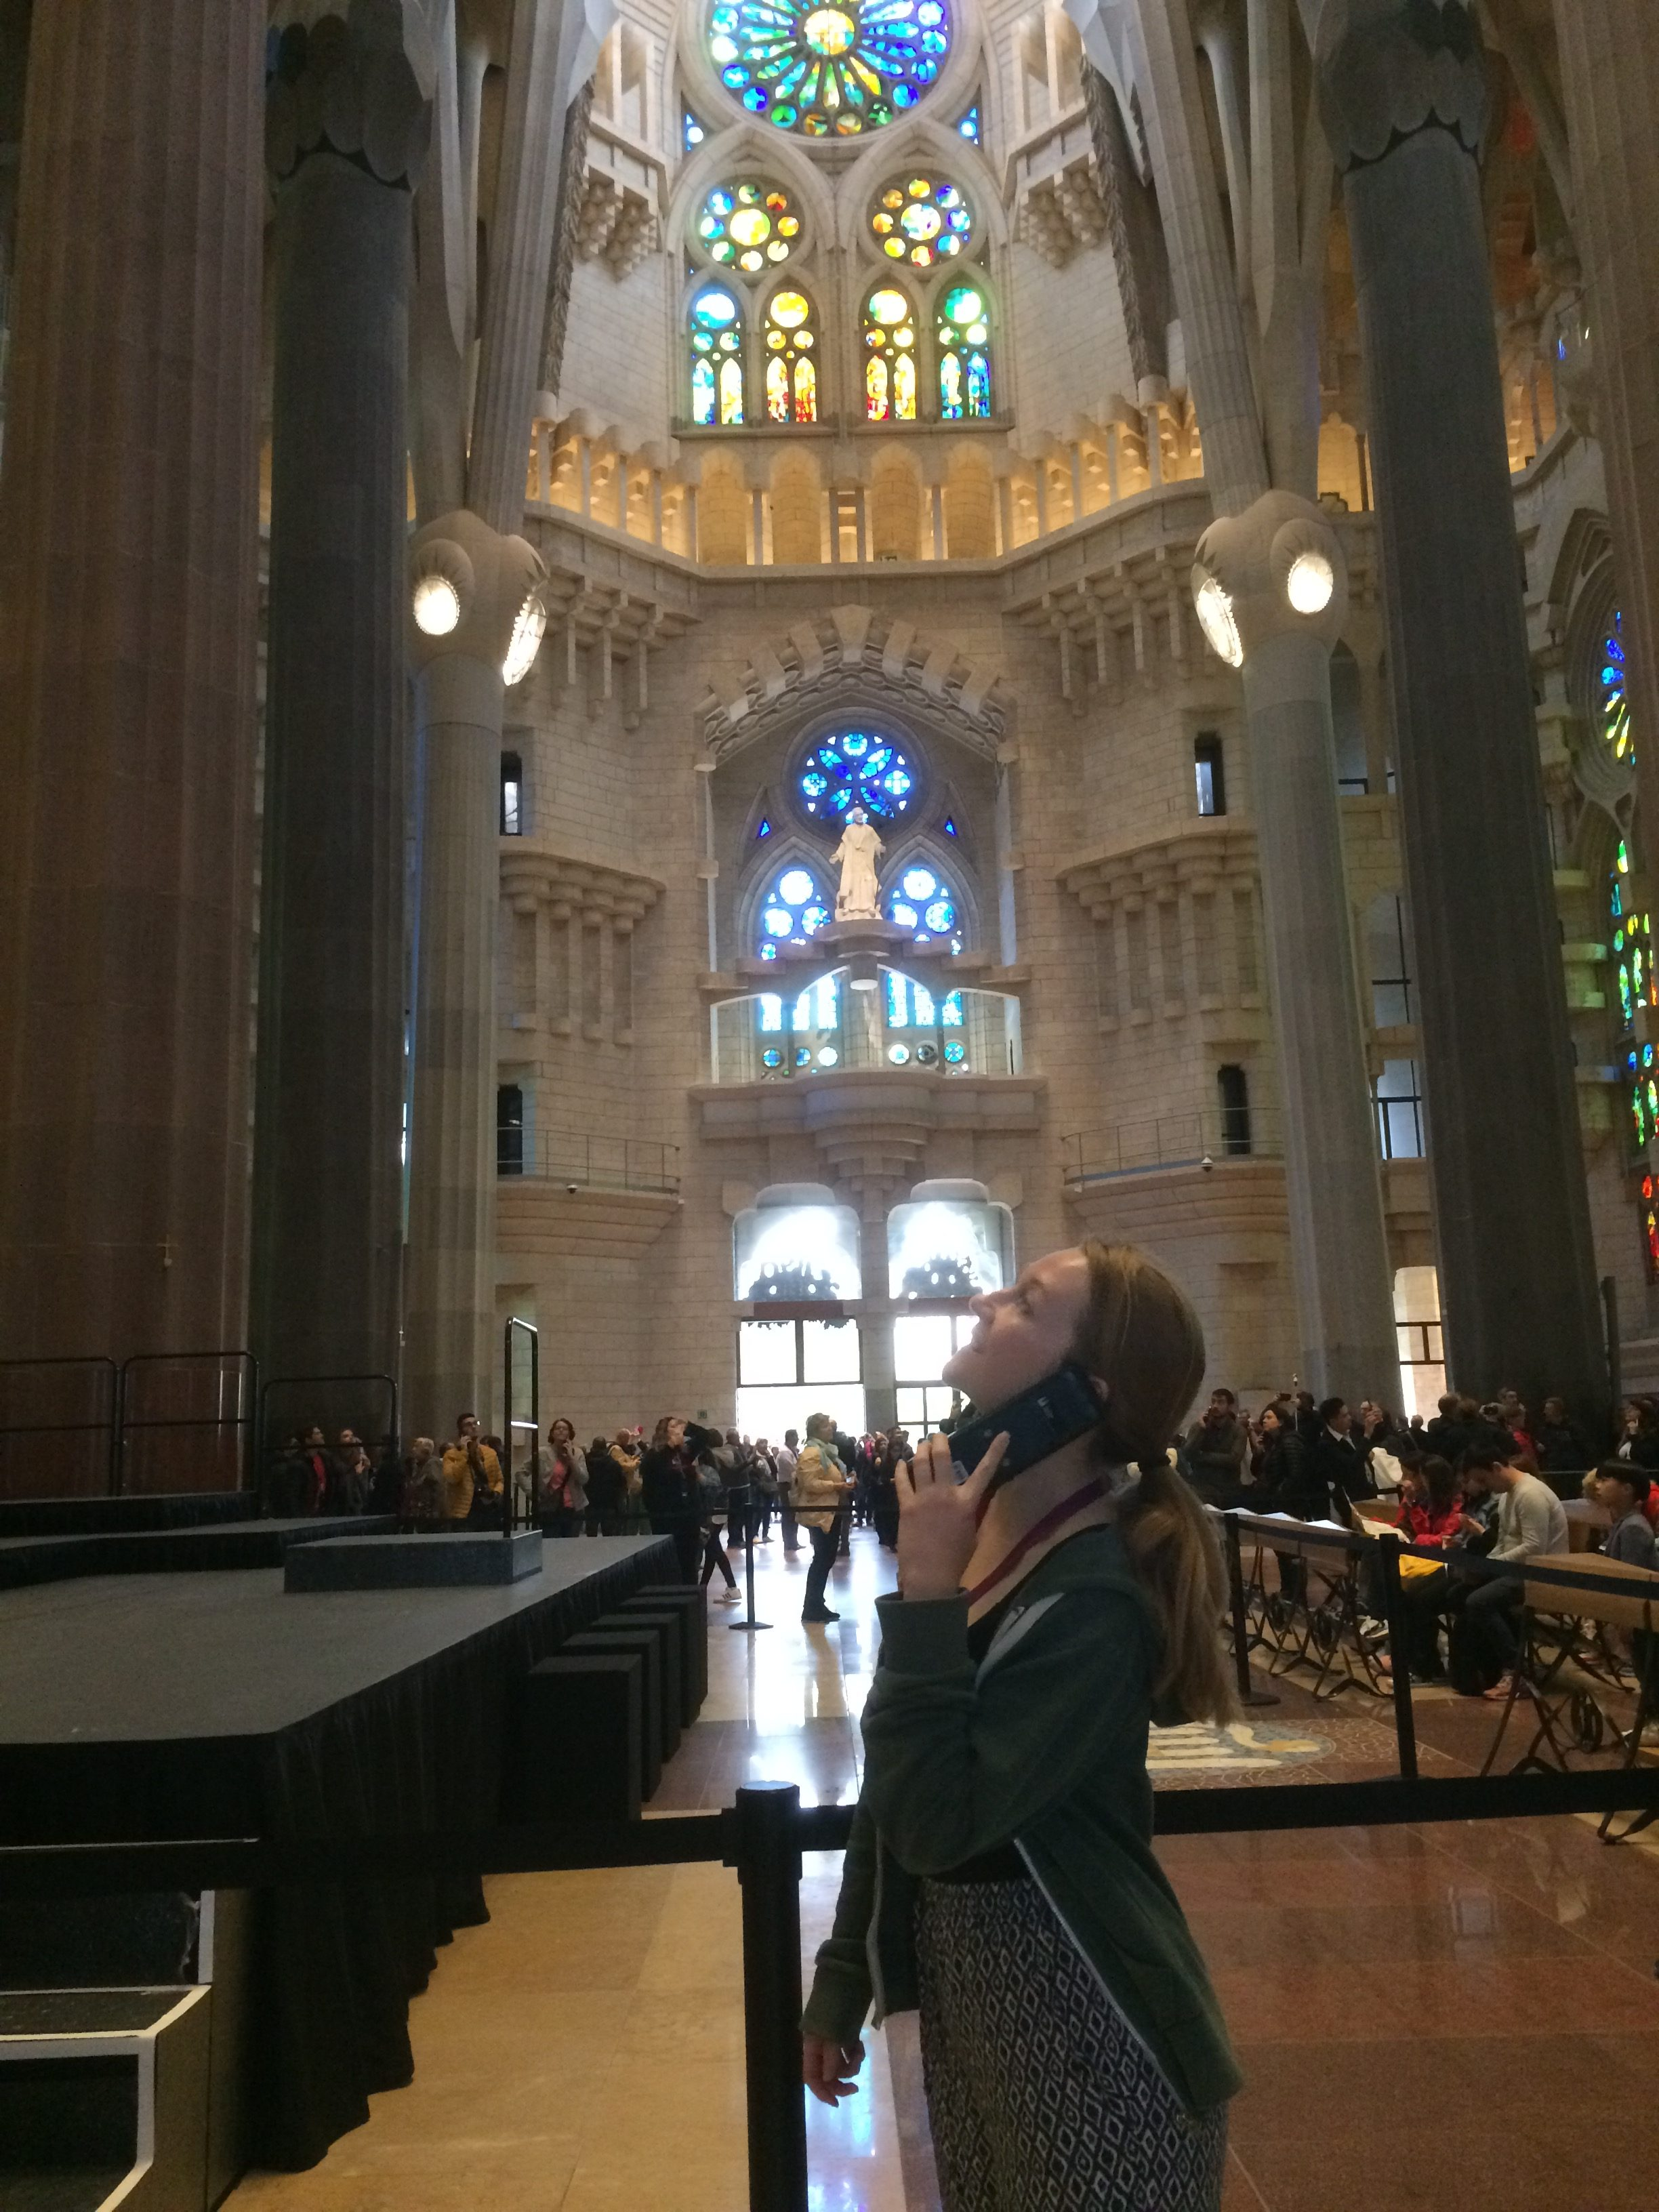 inside of sagrada familia, me with the audio guide